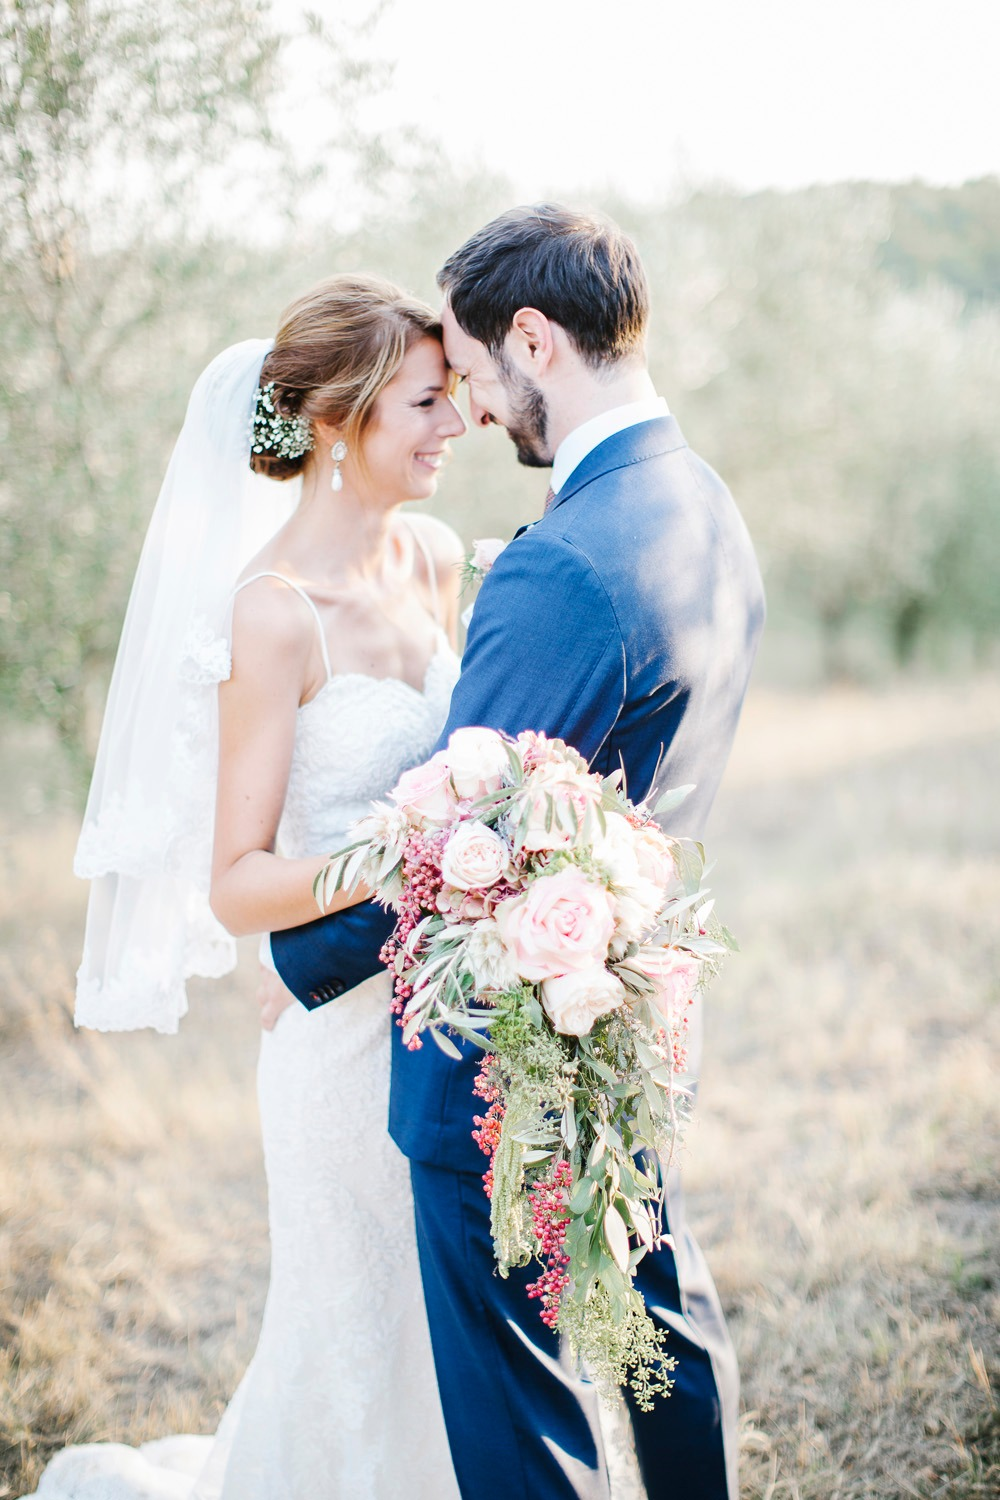 Warm and blissful Tuscan wedding